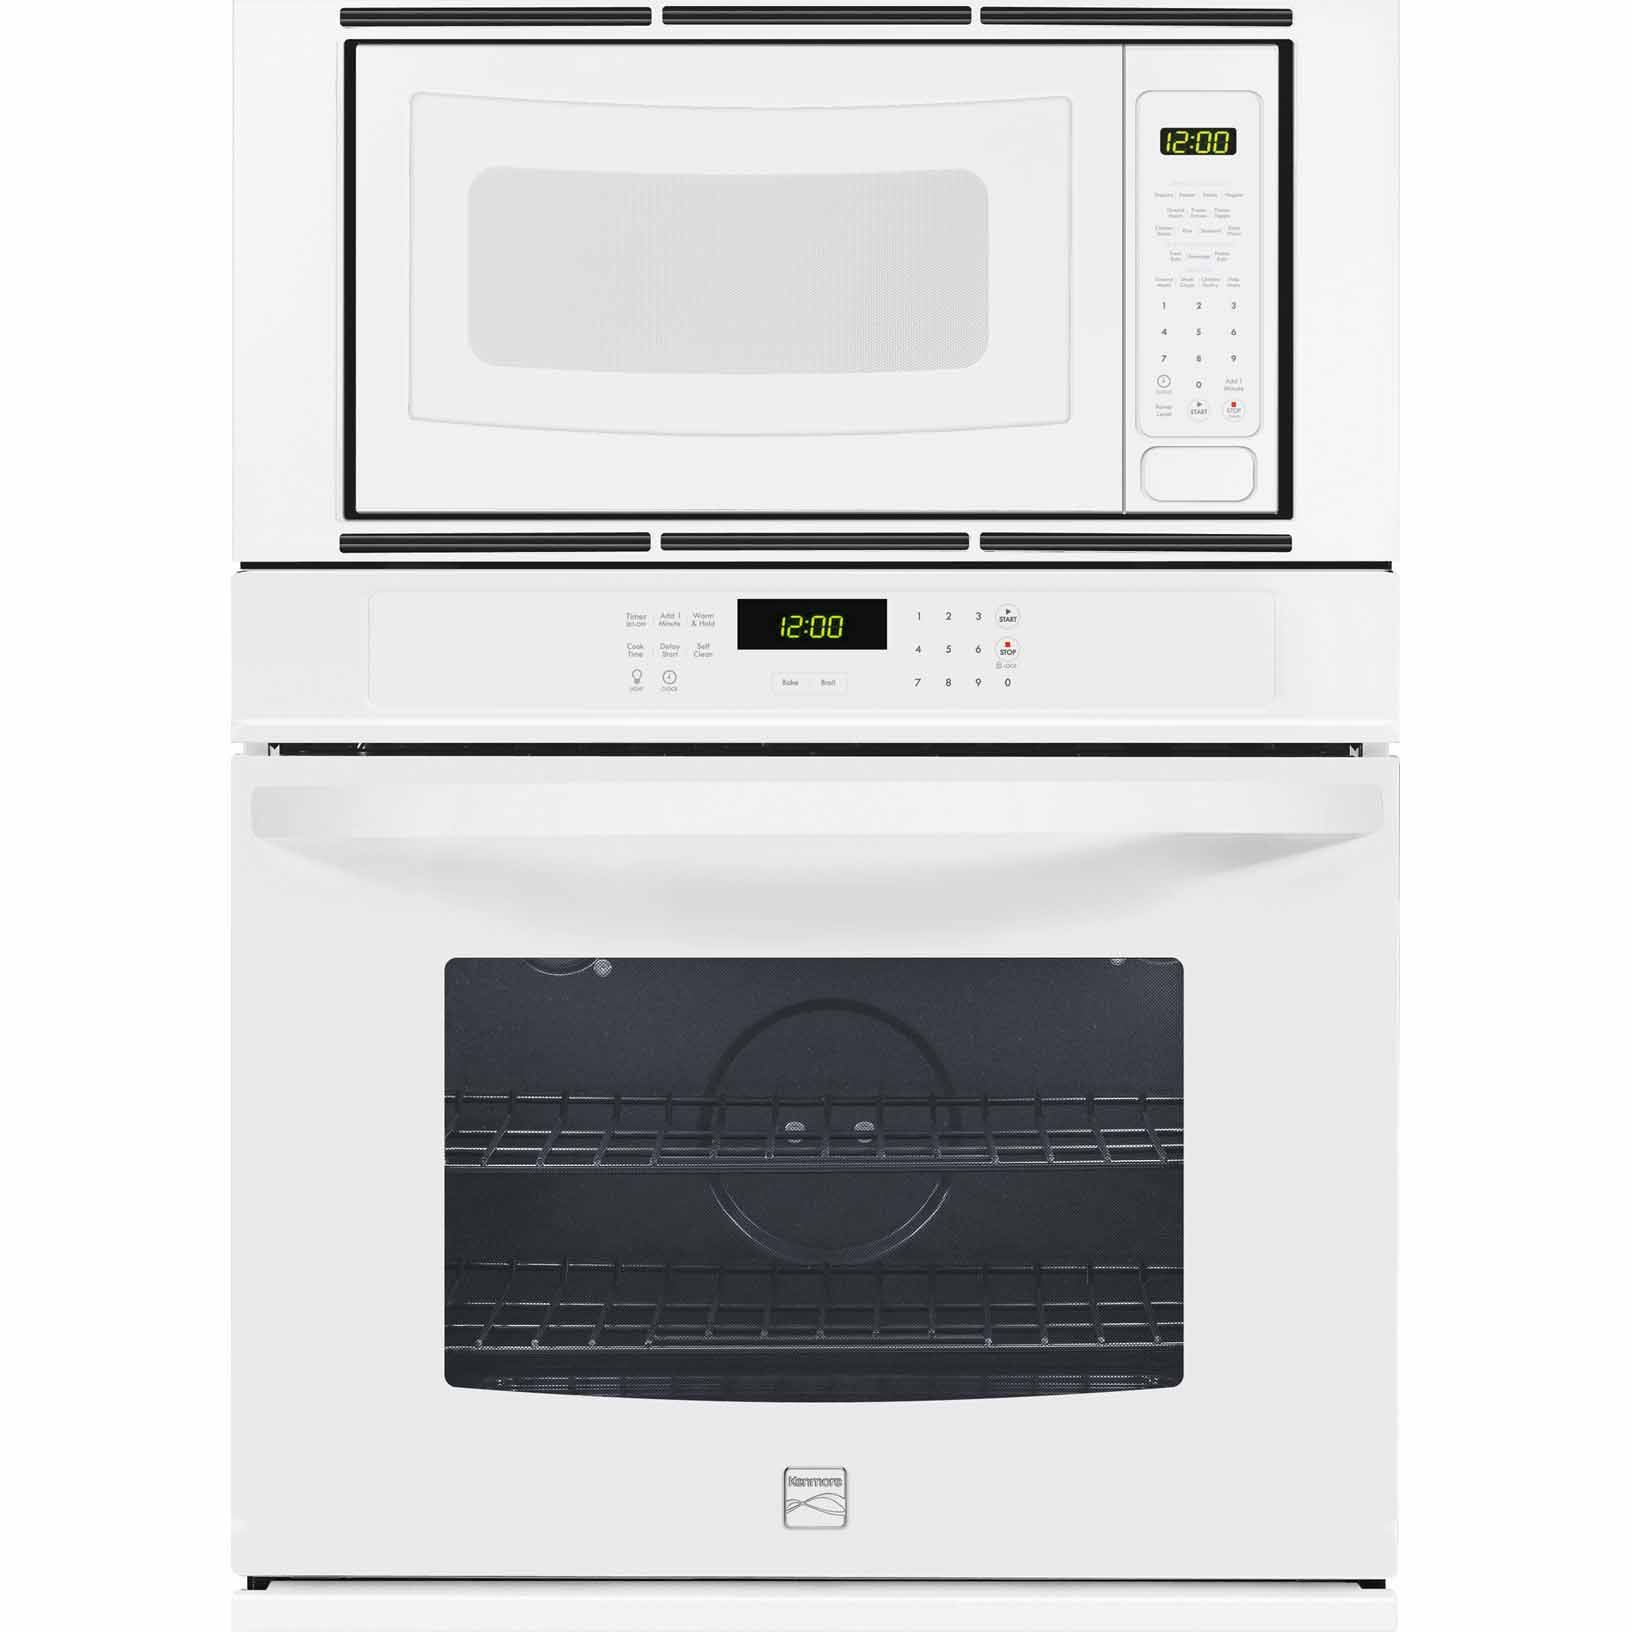 Kenmore 49612 30 Electric Combination Wall Oven - White